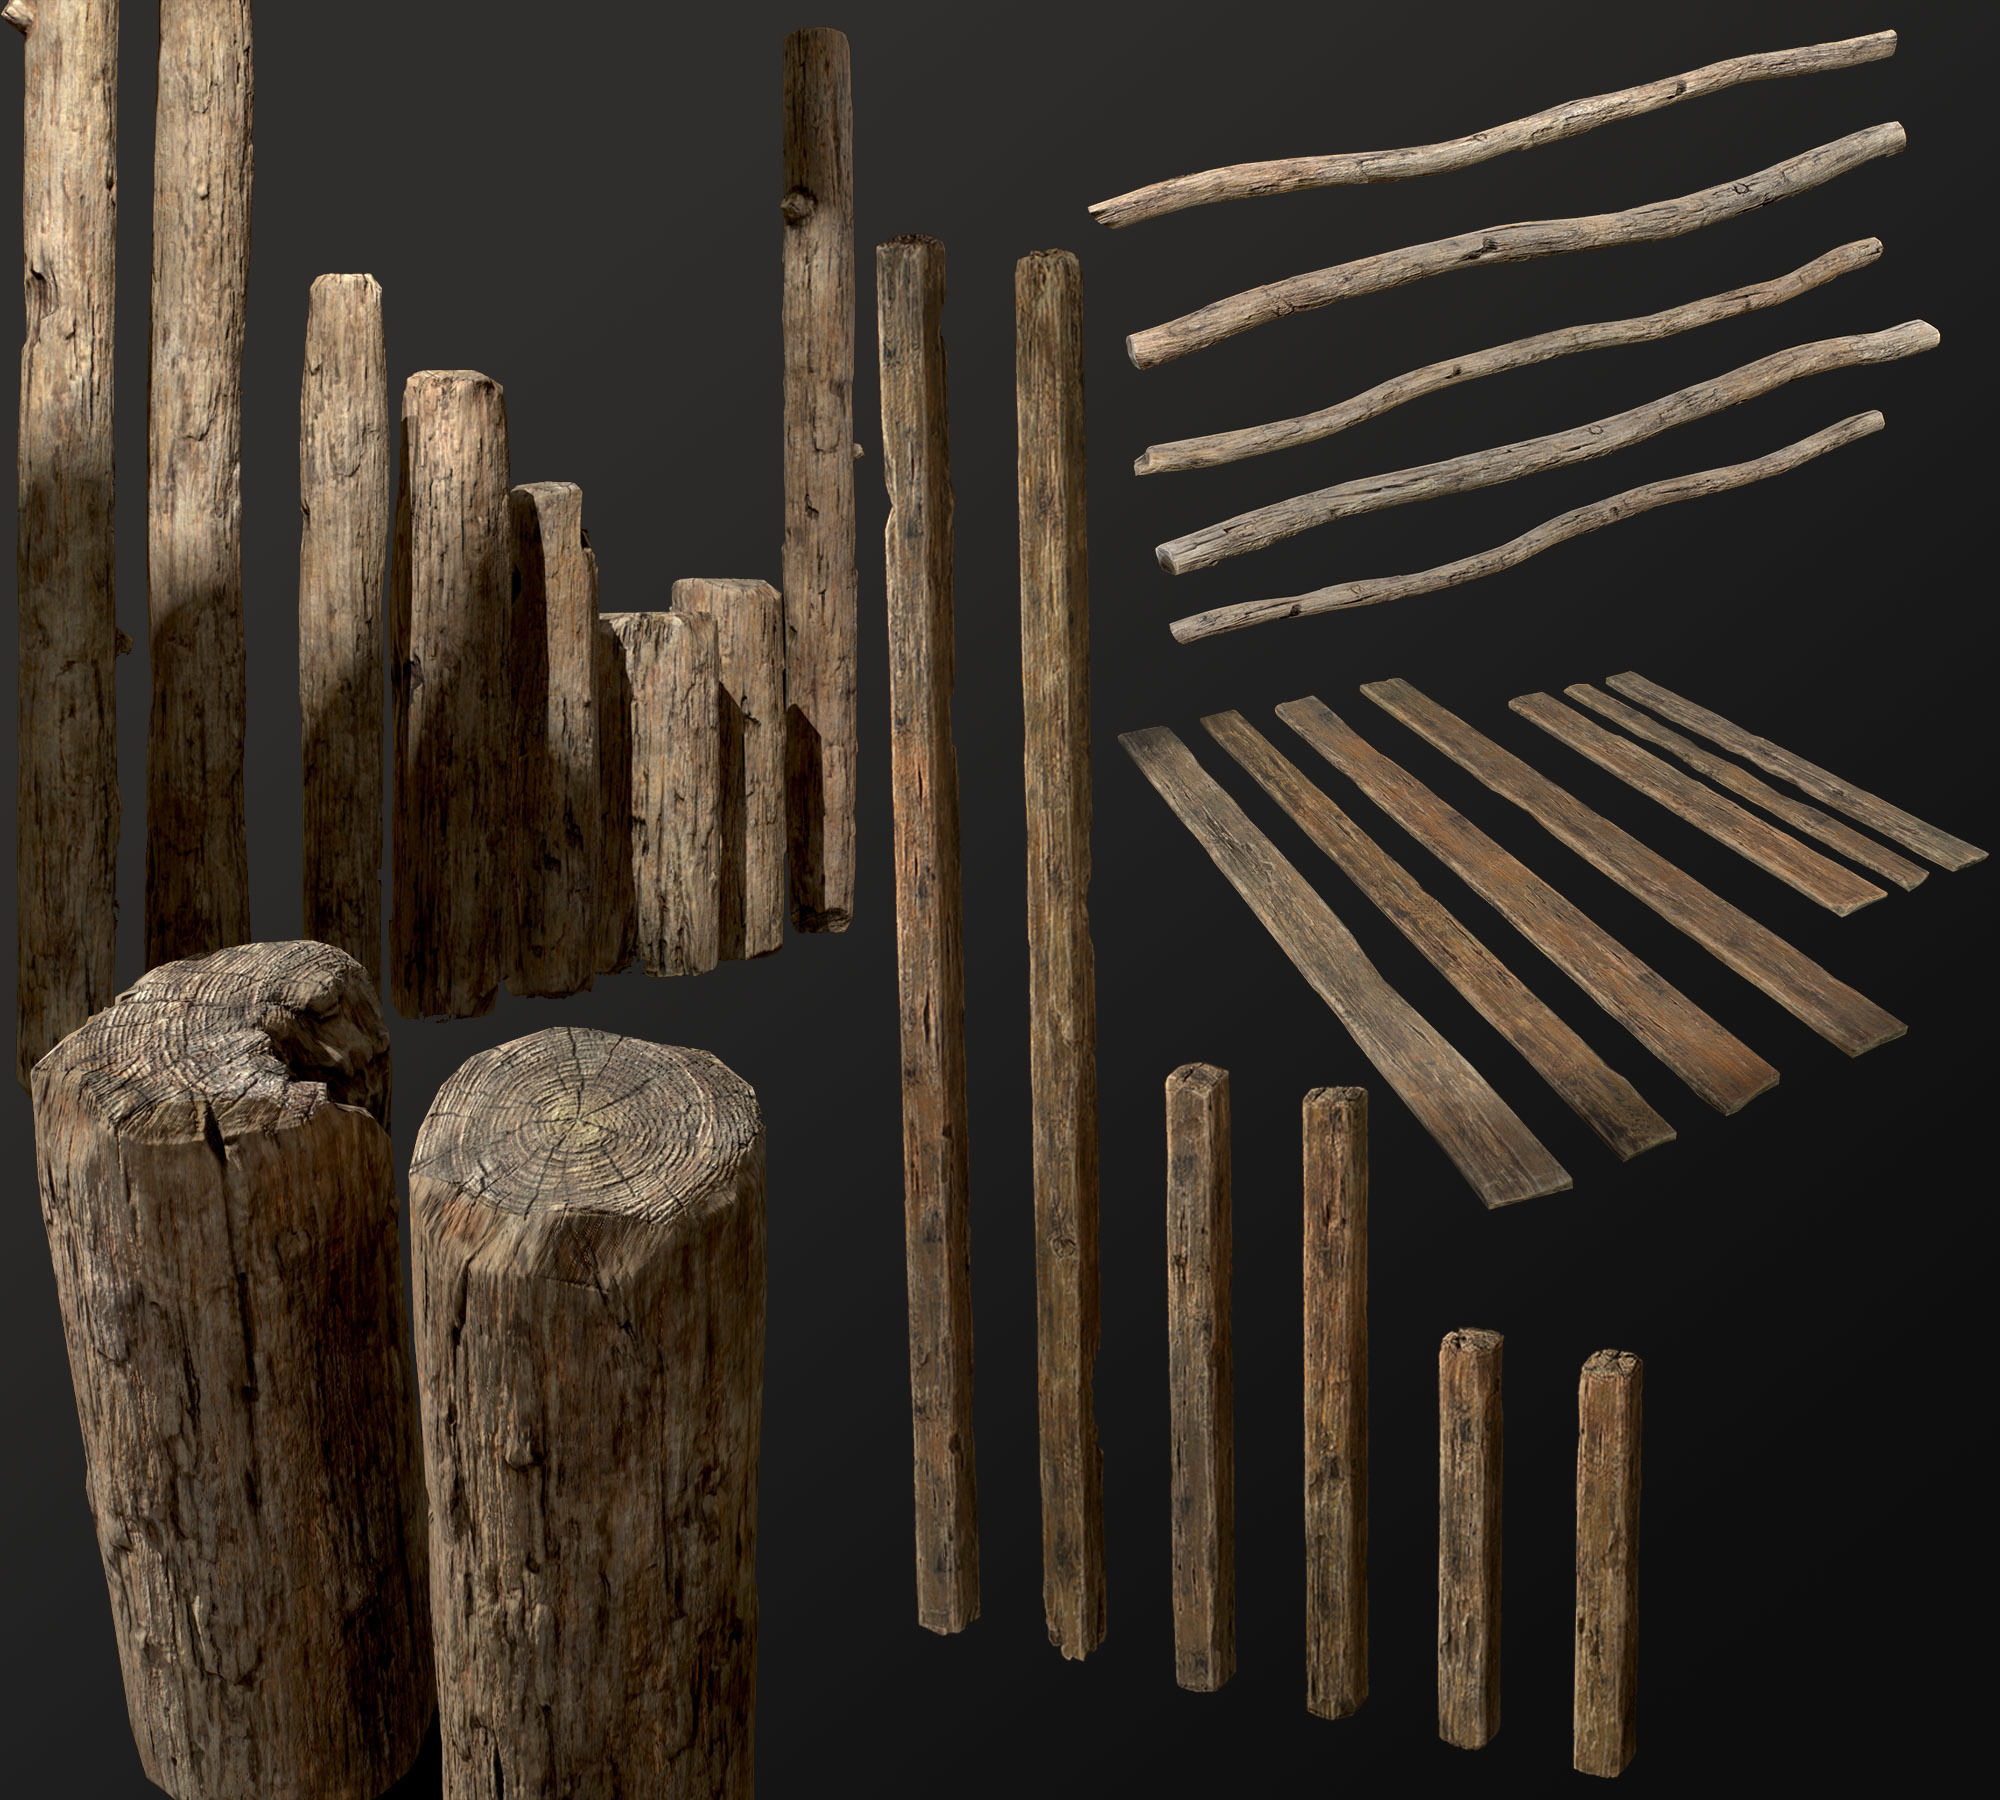 Old Wooden planks poles and beams 26 pieces